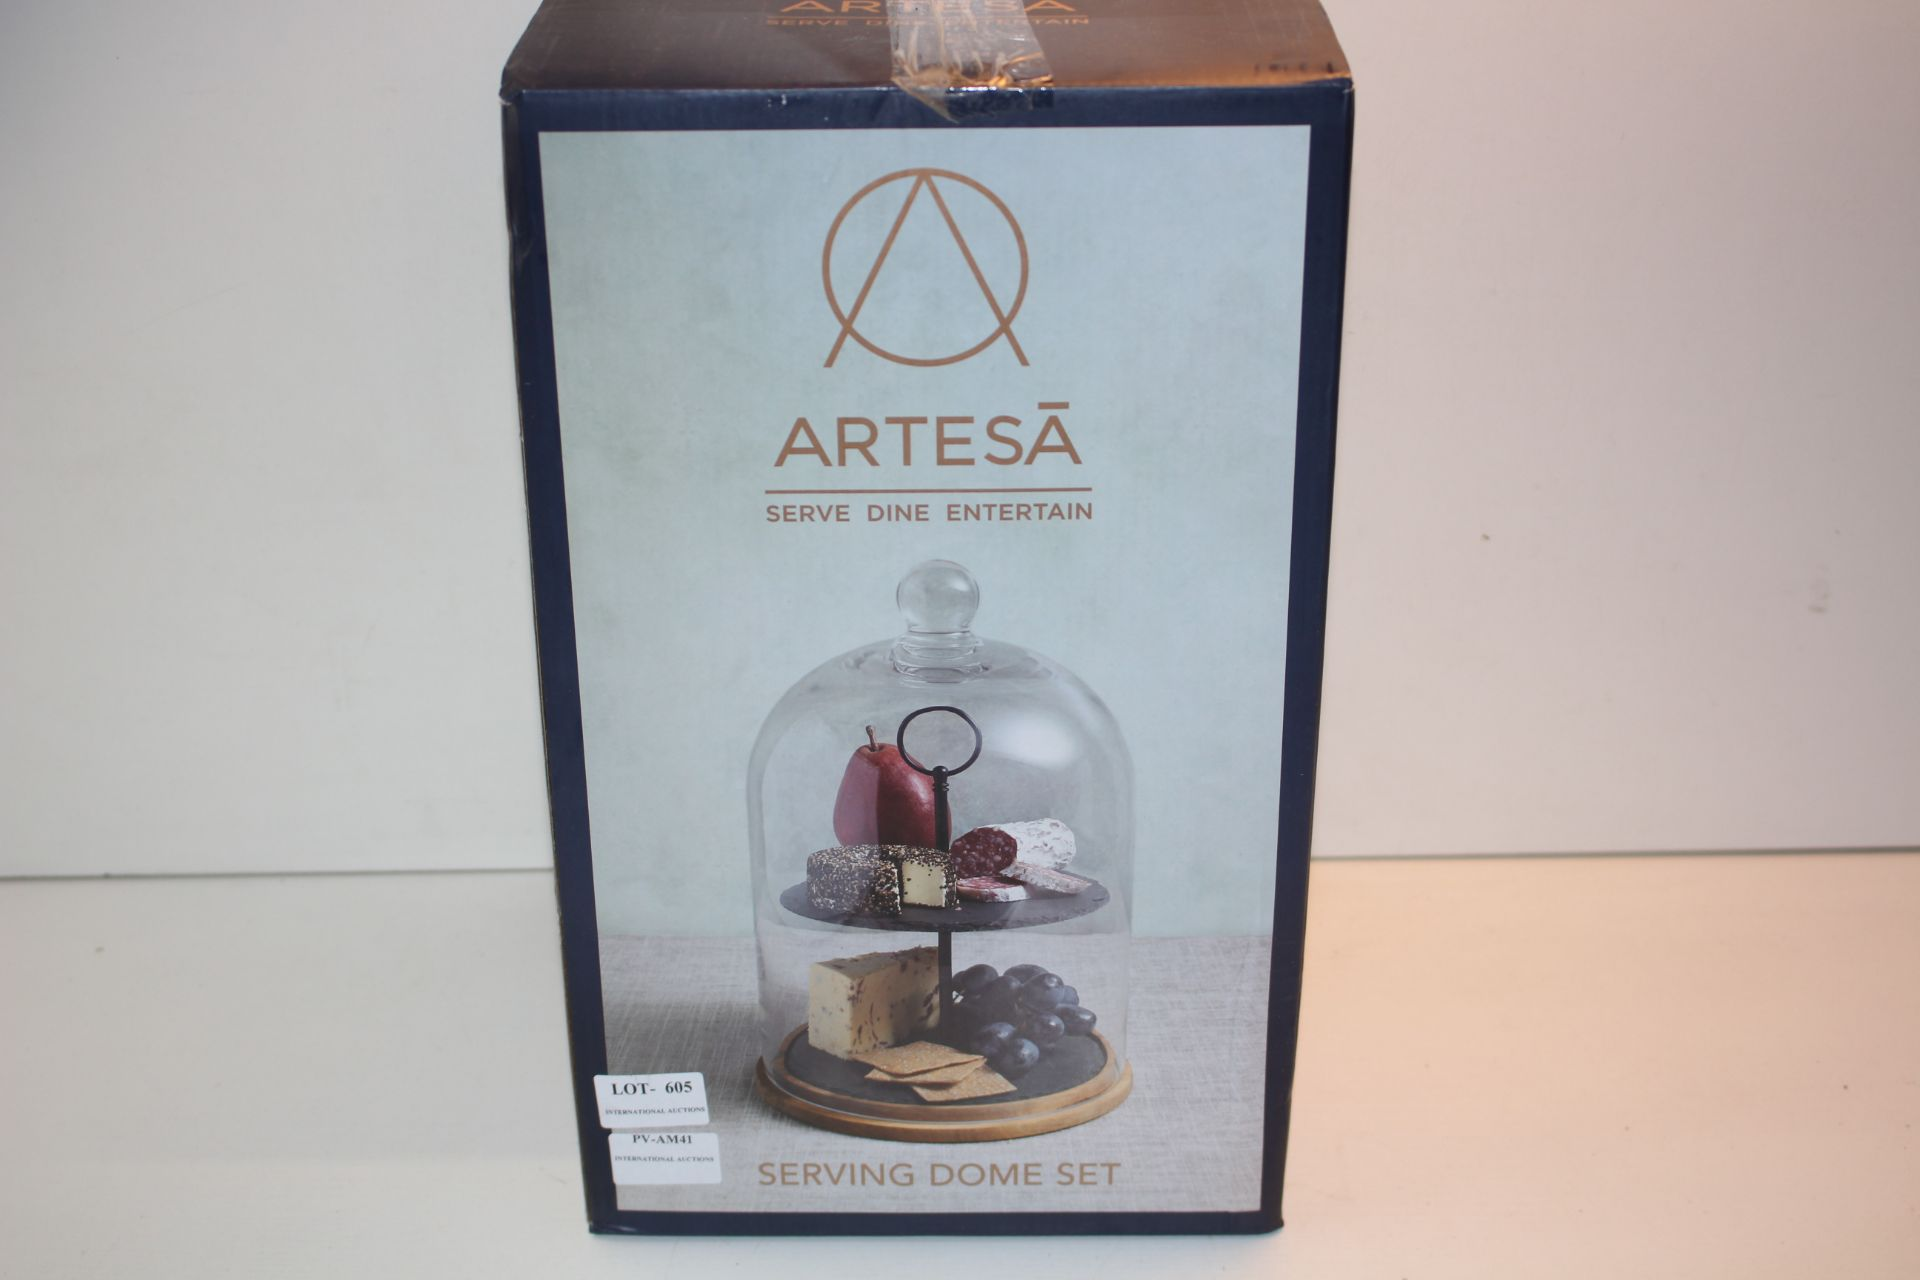 BOXED ARTESA SERVE DINE, SERVING DOMECondition ReportAppraisal Available on Request- All Items are